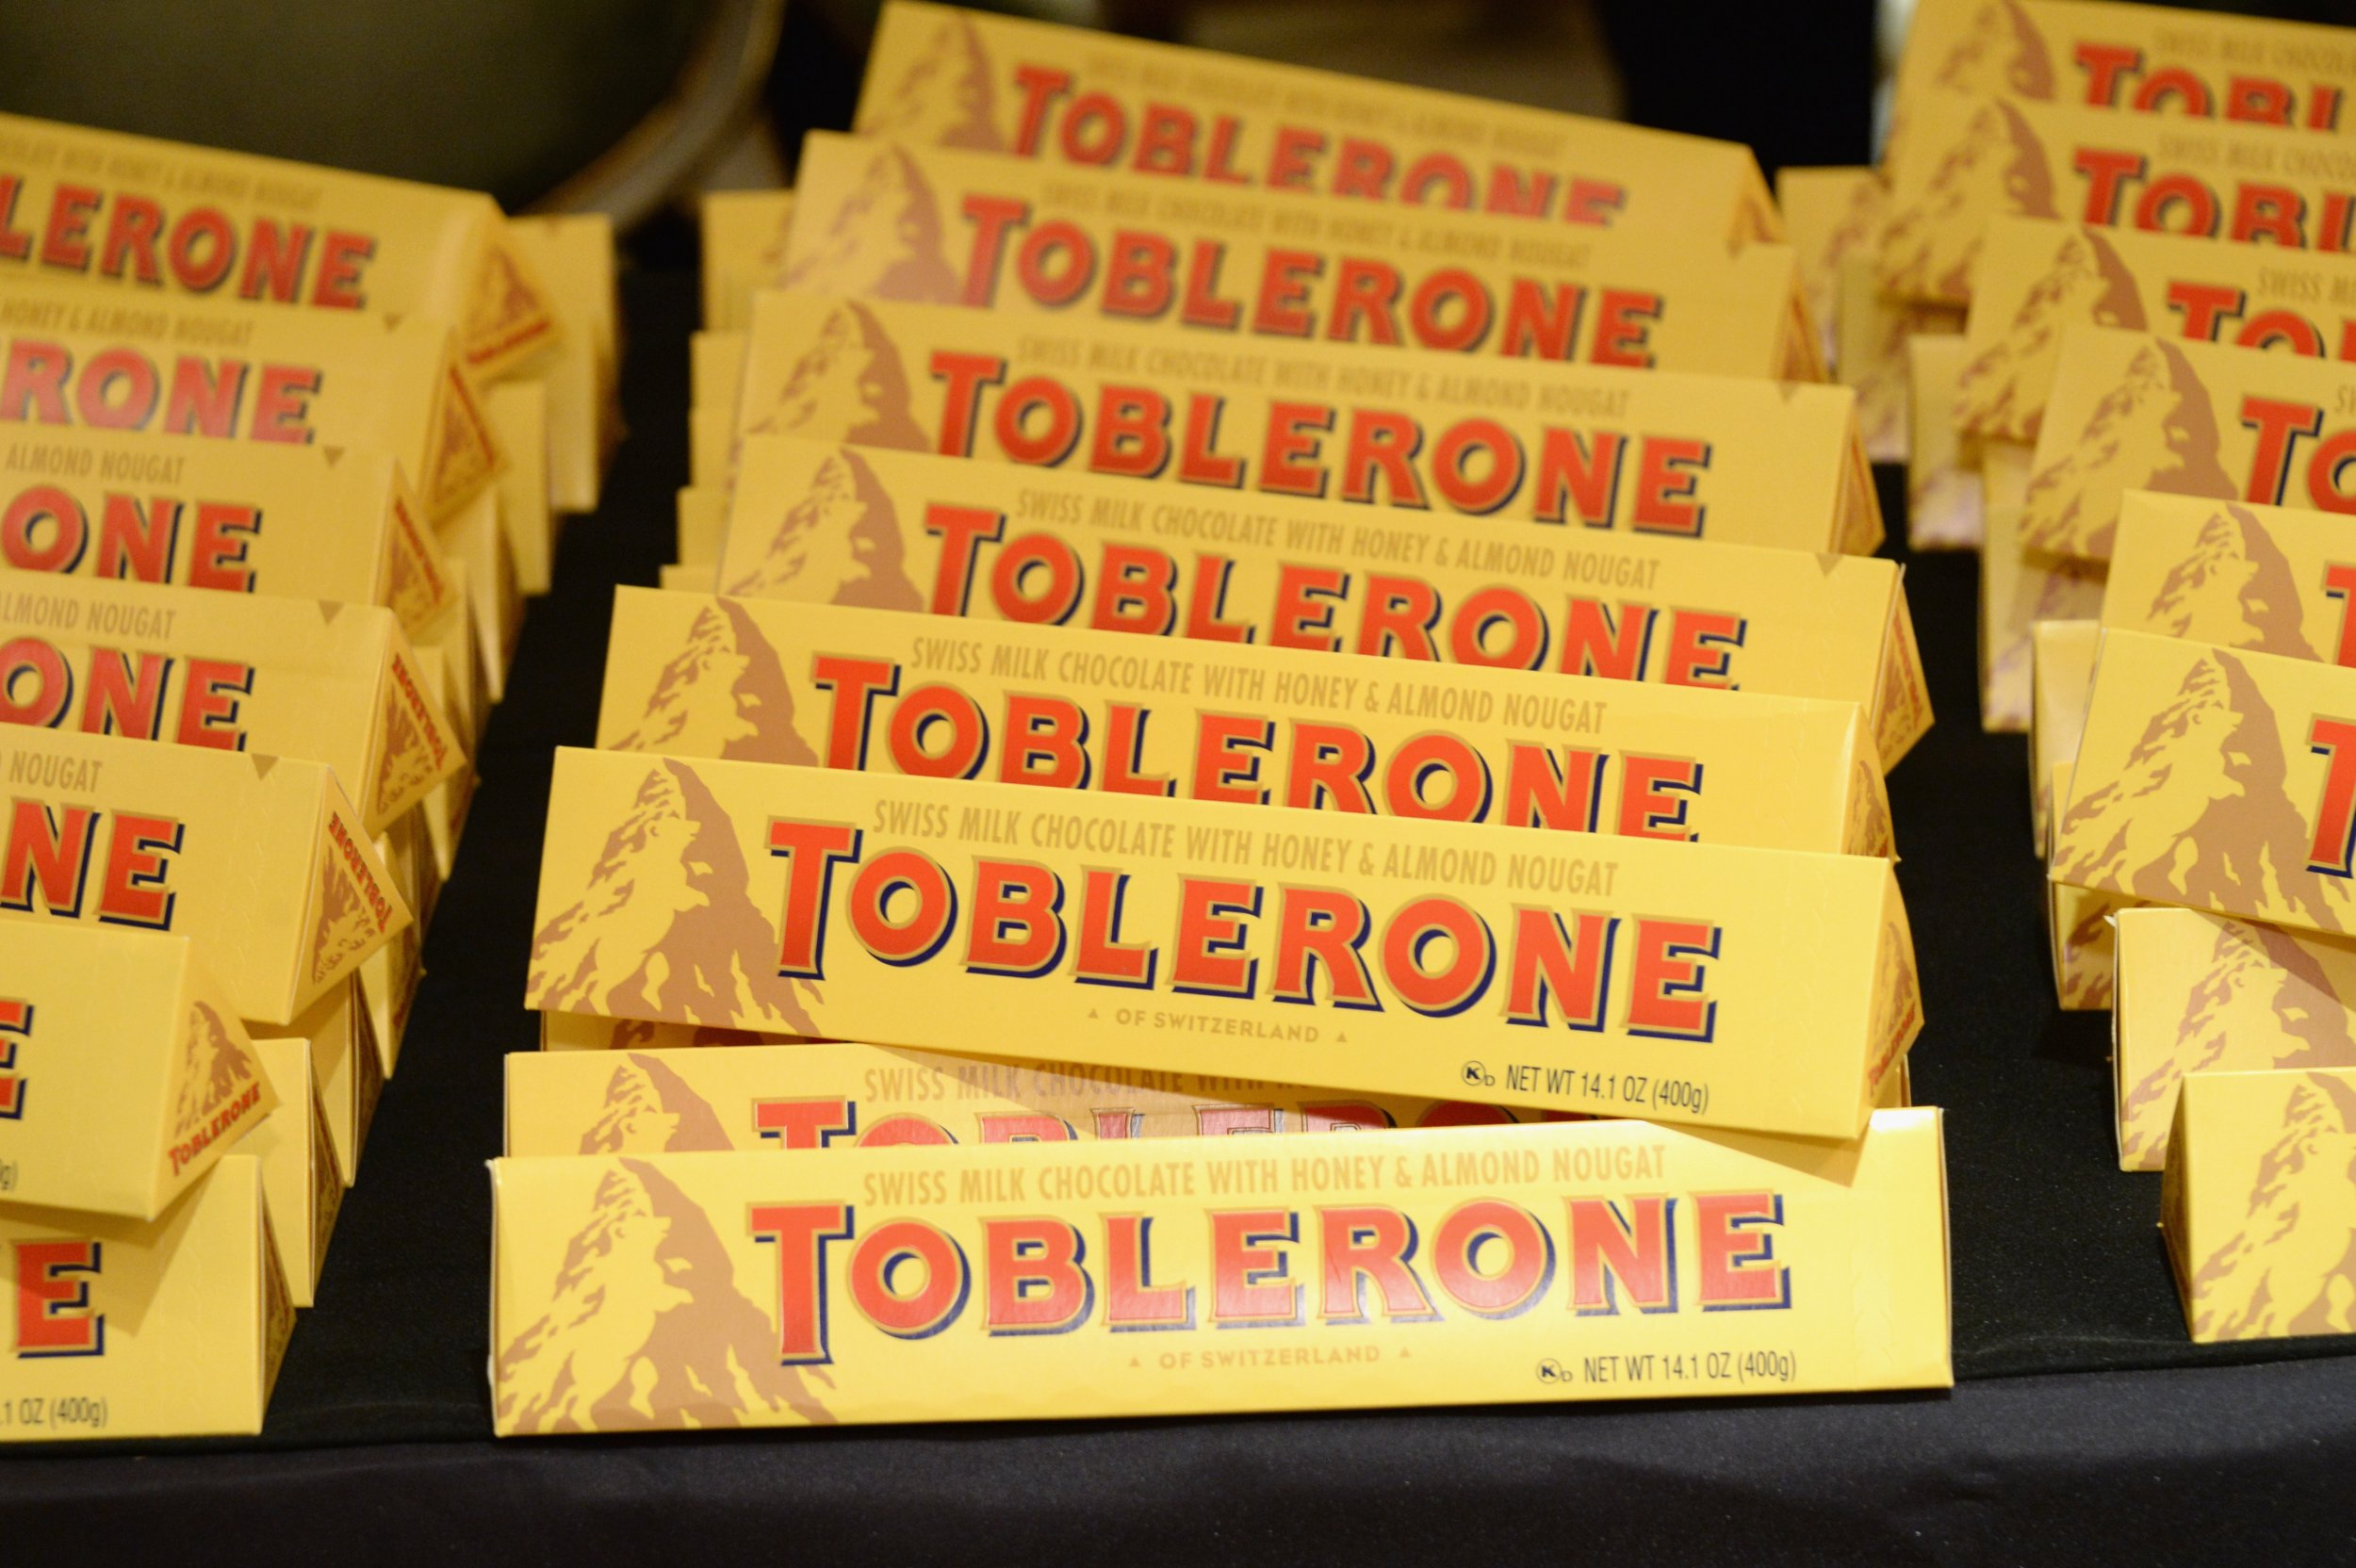 NEW YORK, NY - OCTOBER 17: Toblerone on display at A Tour De France hosted by Dominique Crenn and Michel Richard as a part of the Bank of America Dinner Series during the Food Network New York City Wine & Food Festival Presented By FOOD & WINE at Hotel Plaza Ahtenee on October 17, 2014 in New York City. (Photo by Ben Gabbe/Getty Images for NYCWFF)